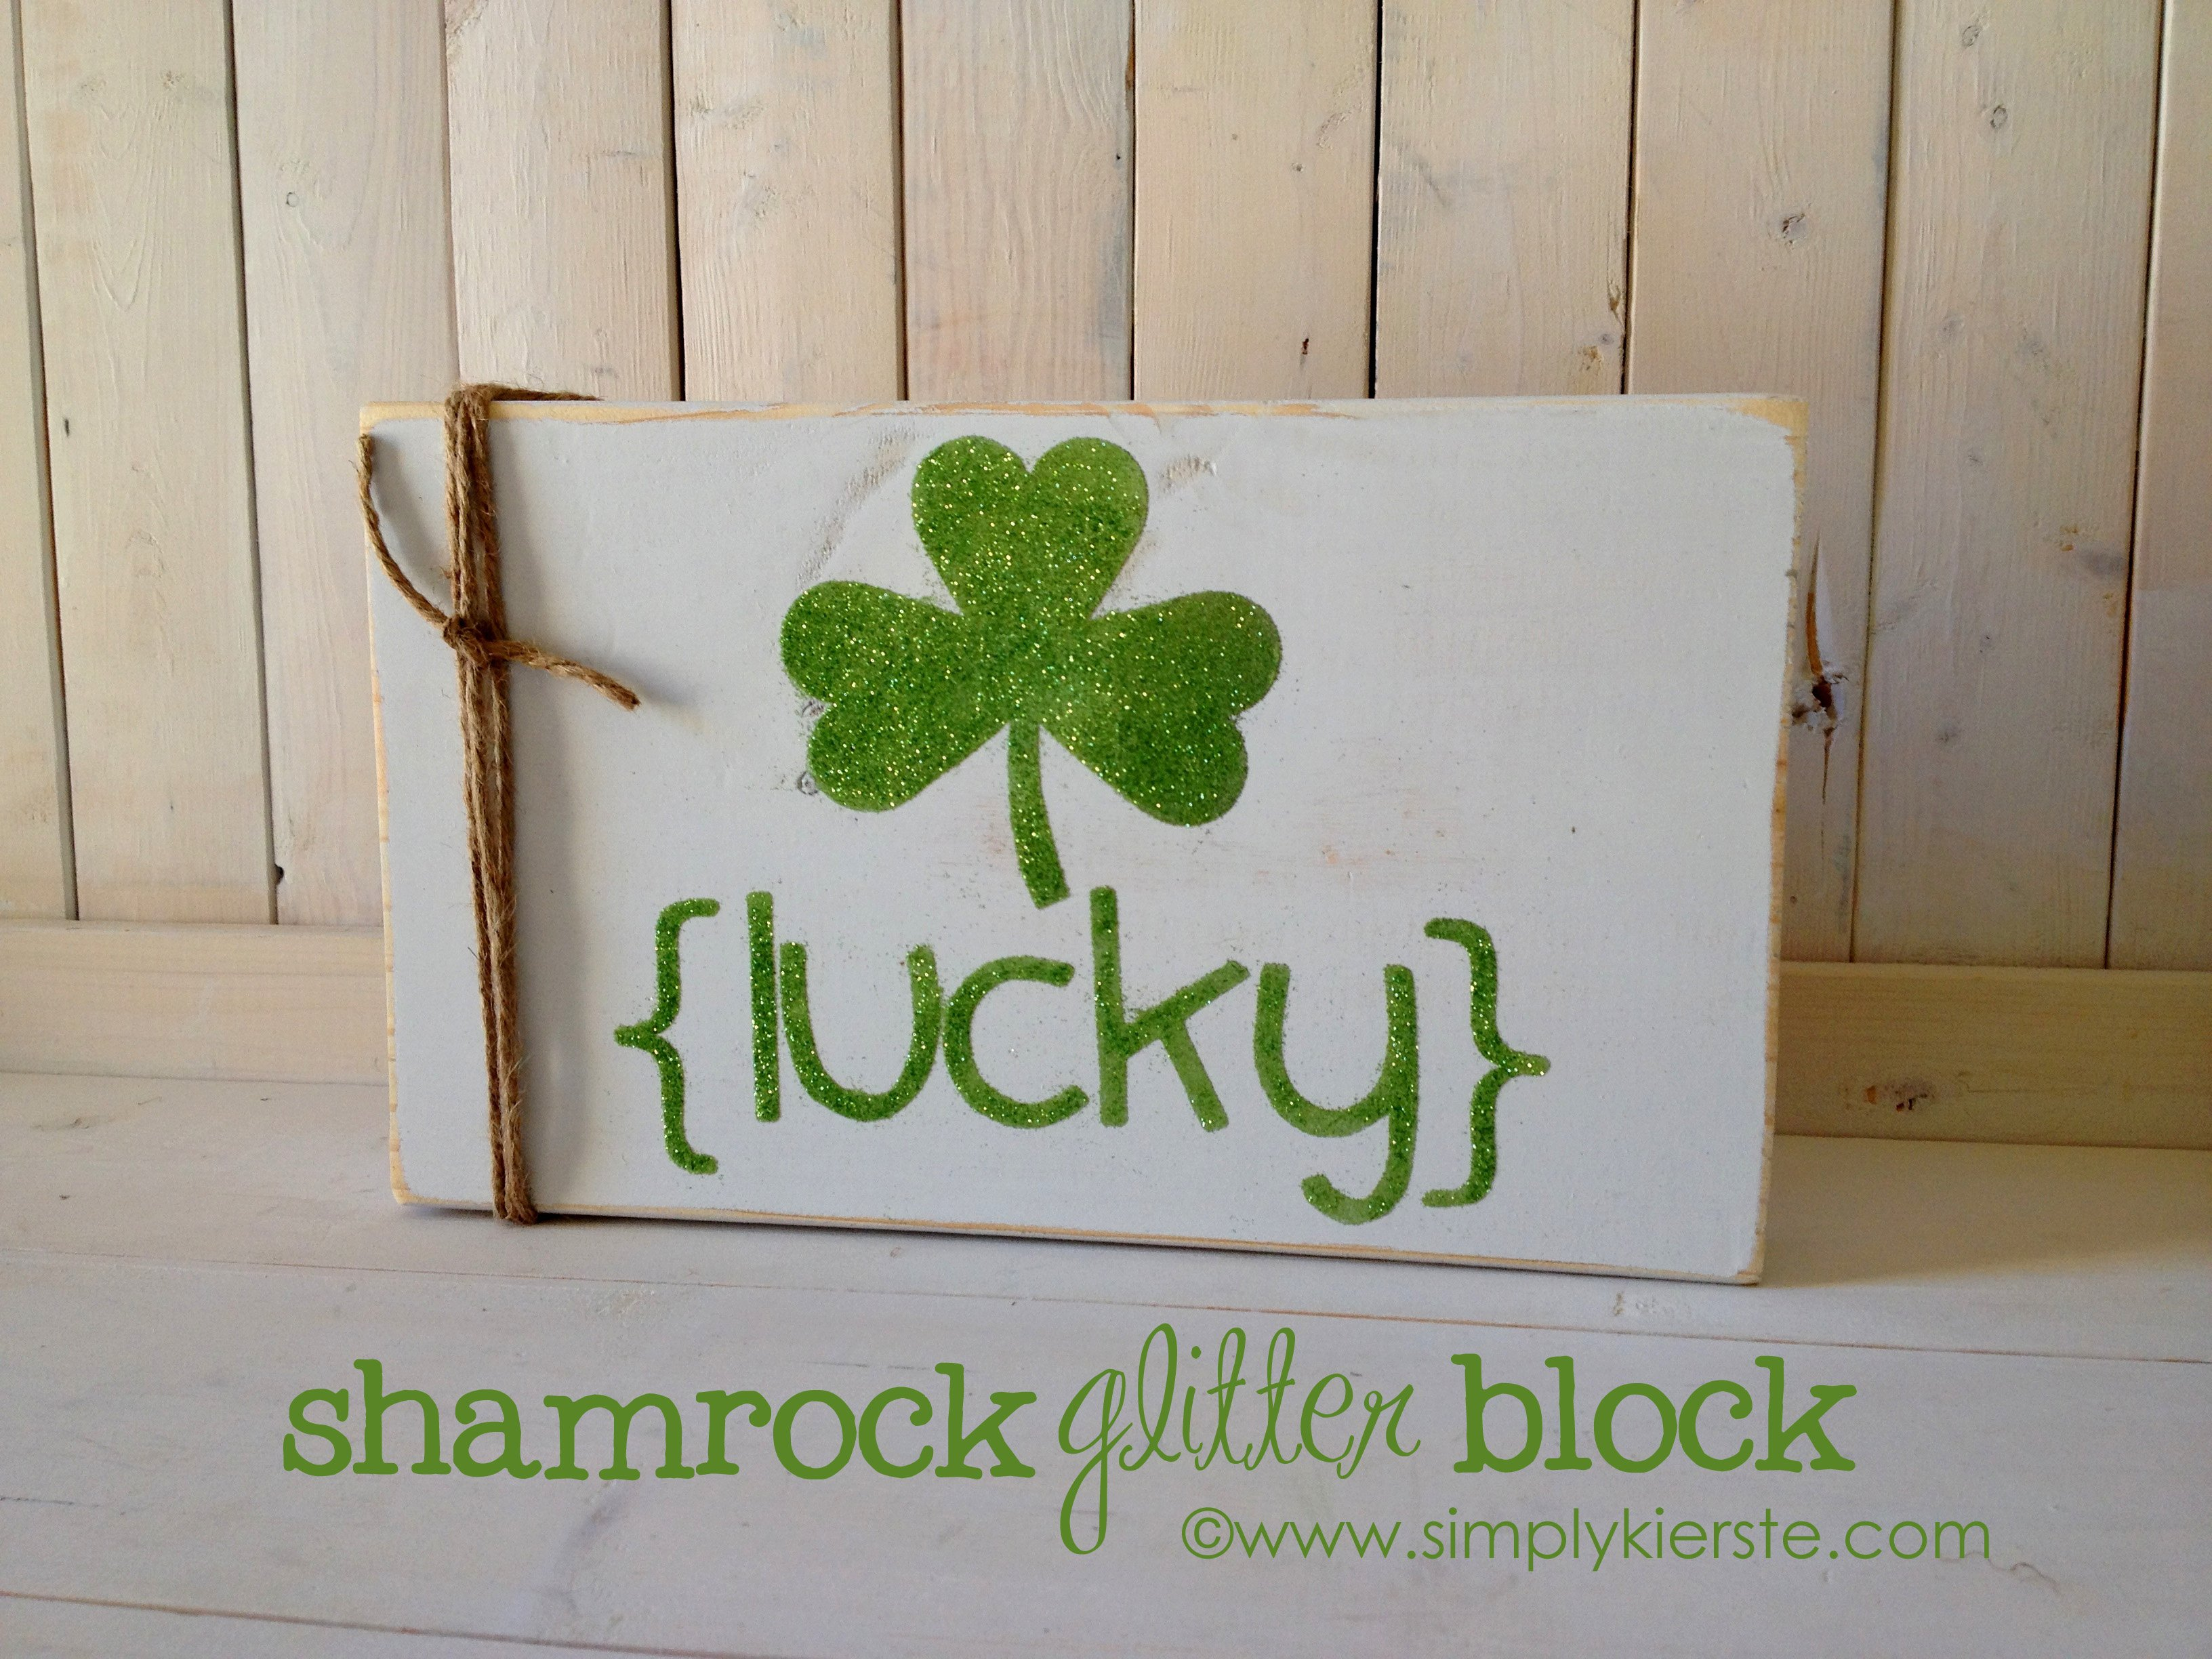 shamrock glitter block decor